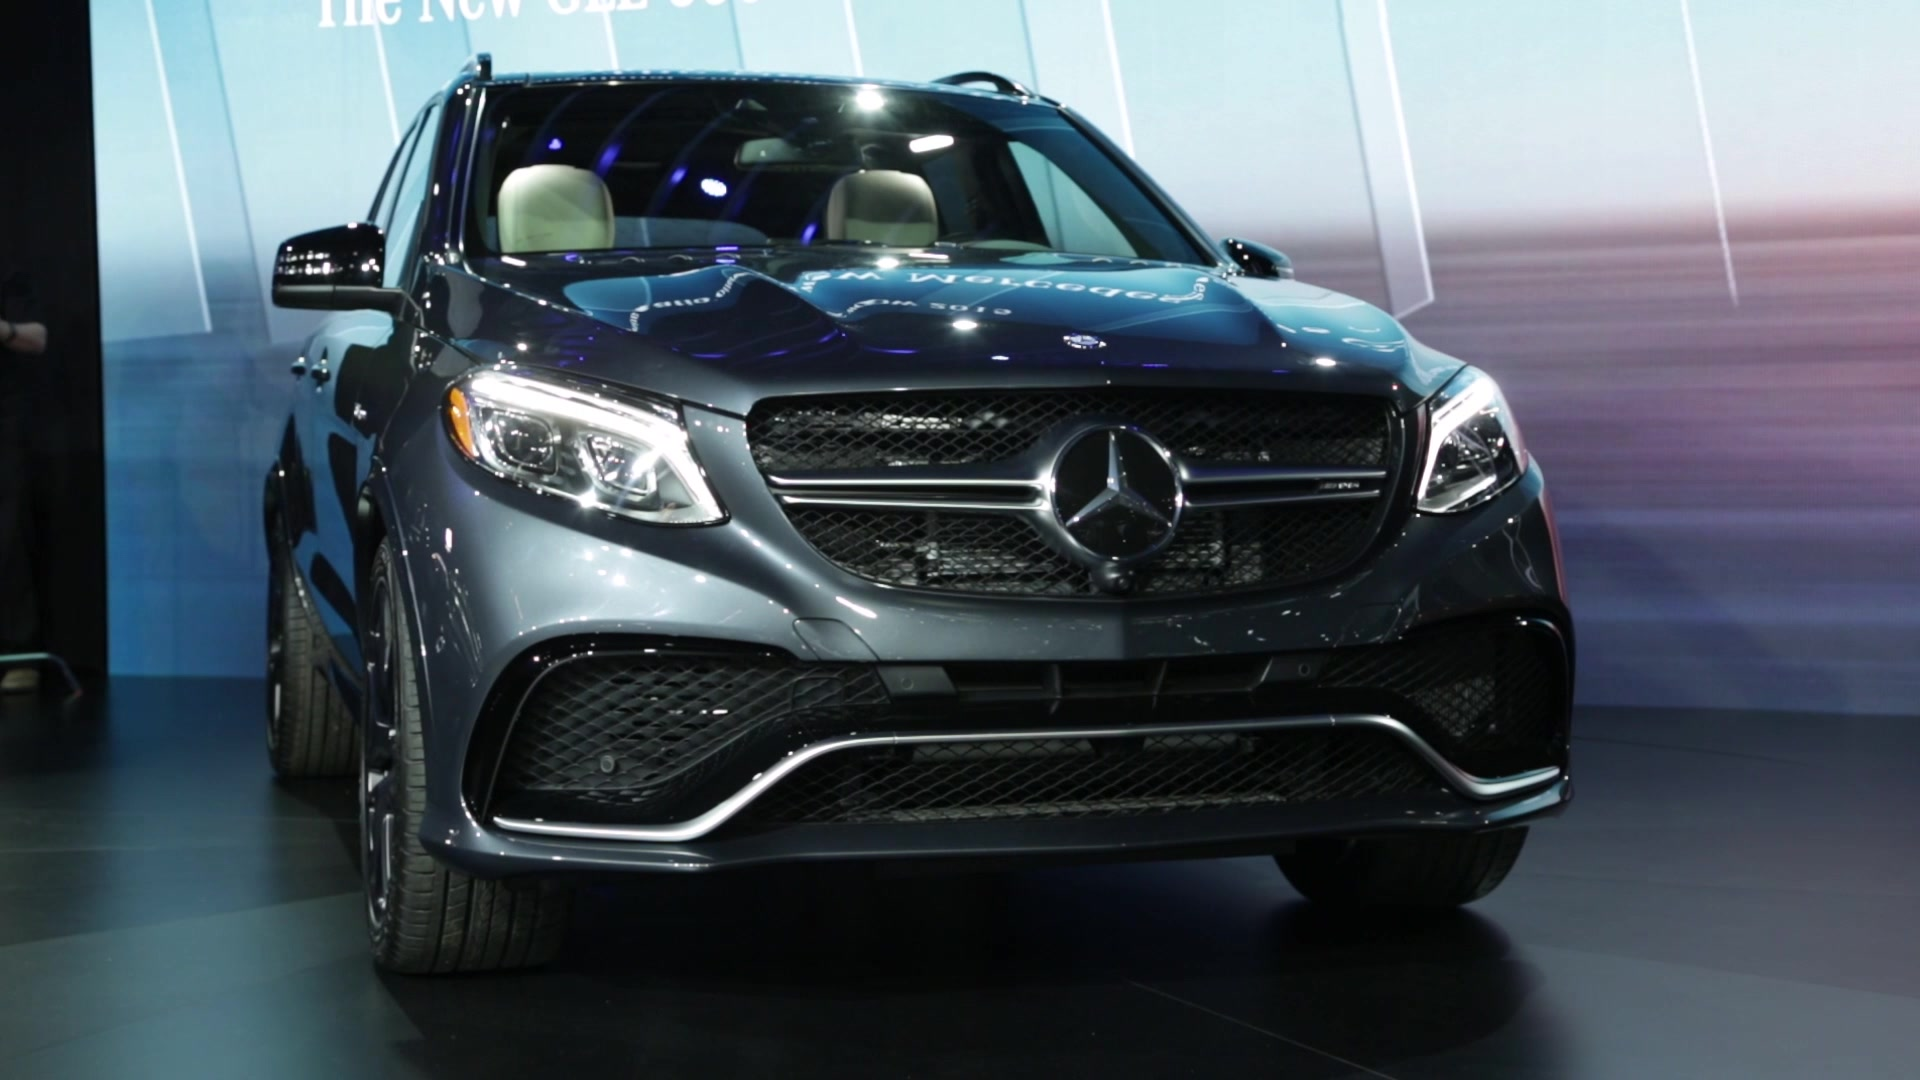 Mercedes-Benz GLE Class | 2015 NYIAS